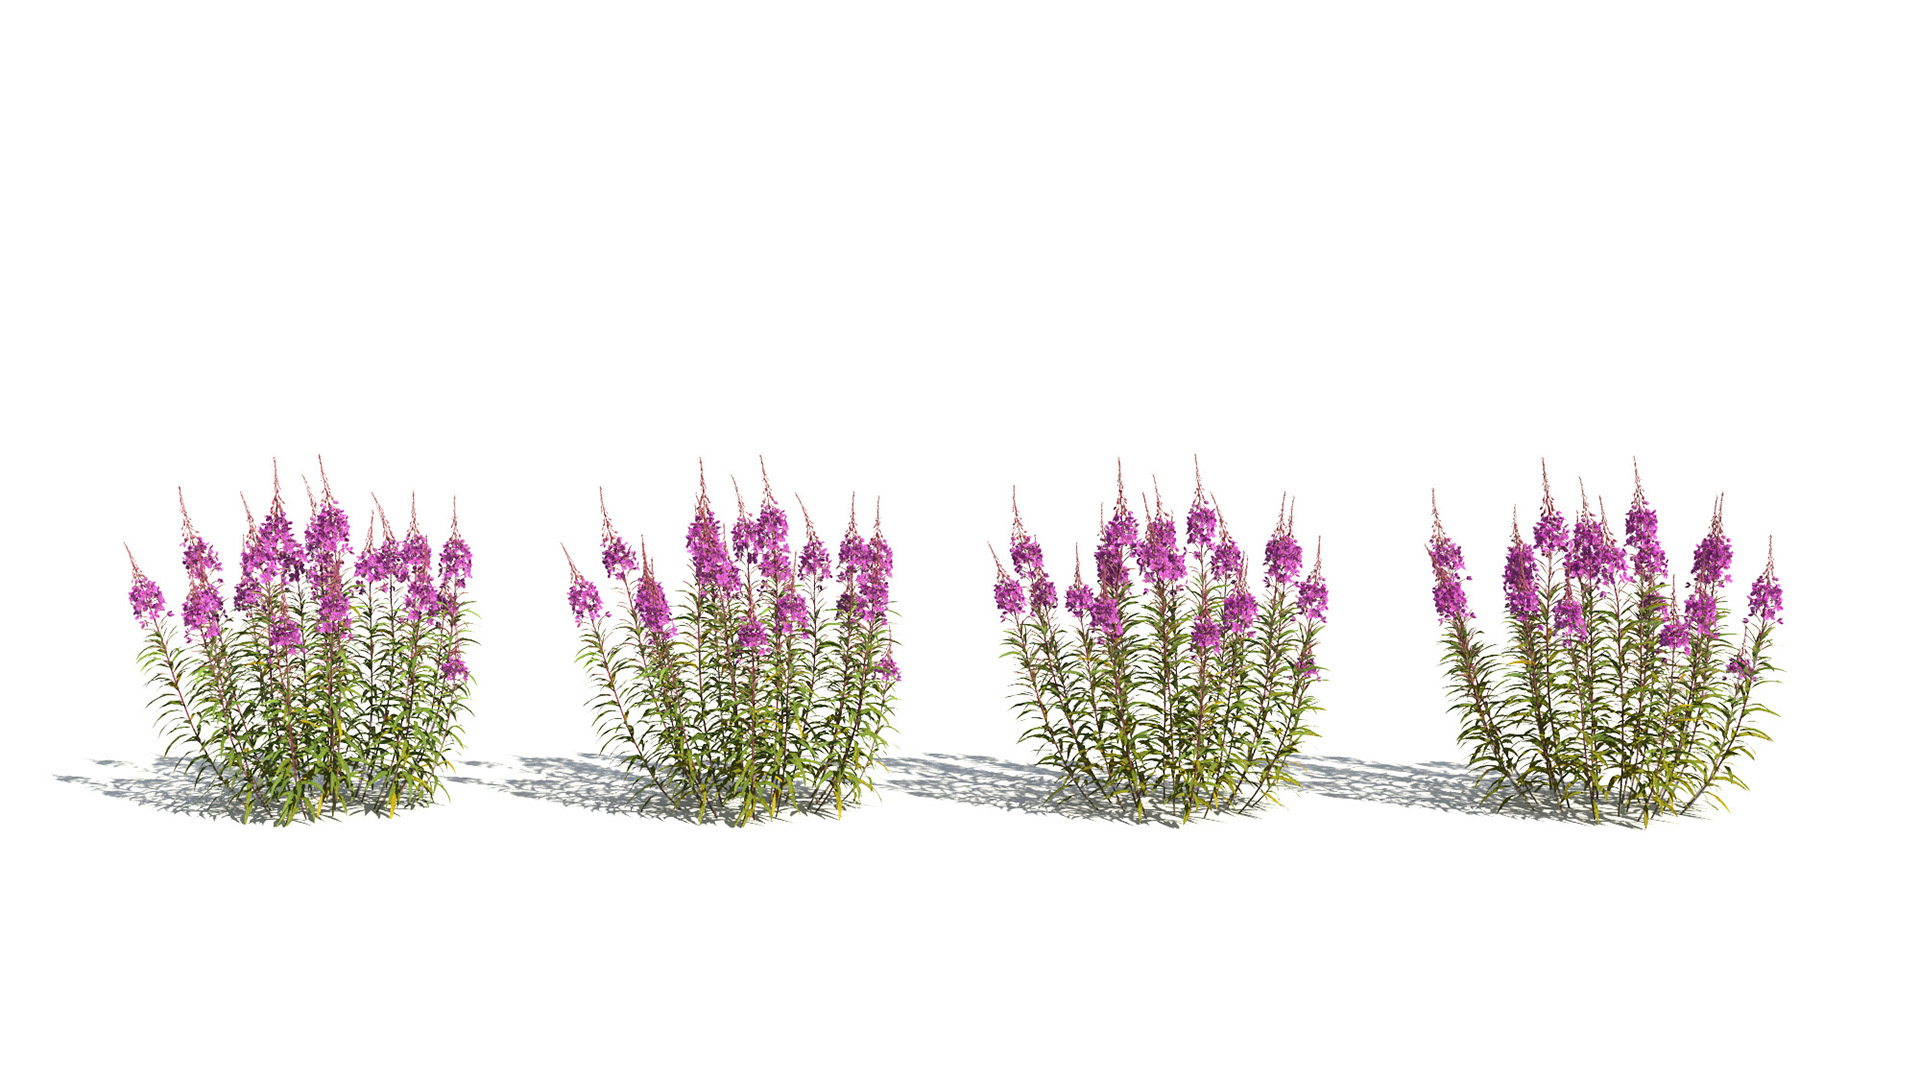 3D model of the Fireweed Chamerion angustifolium health variations